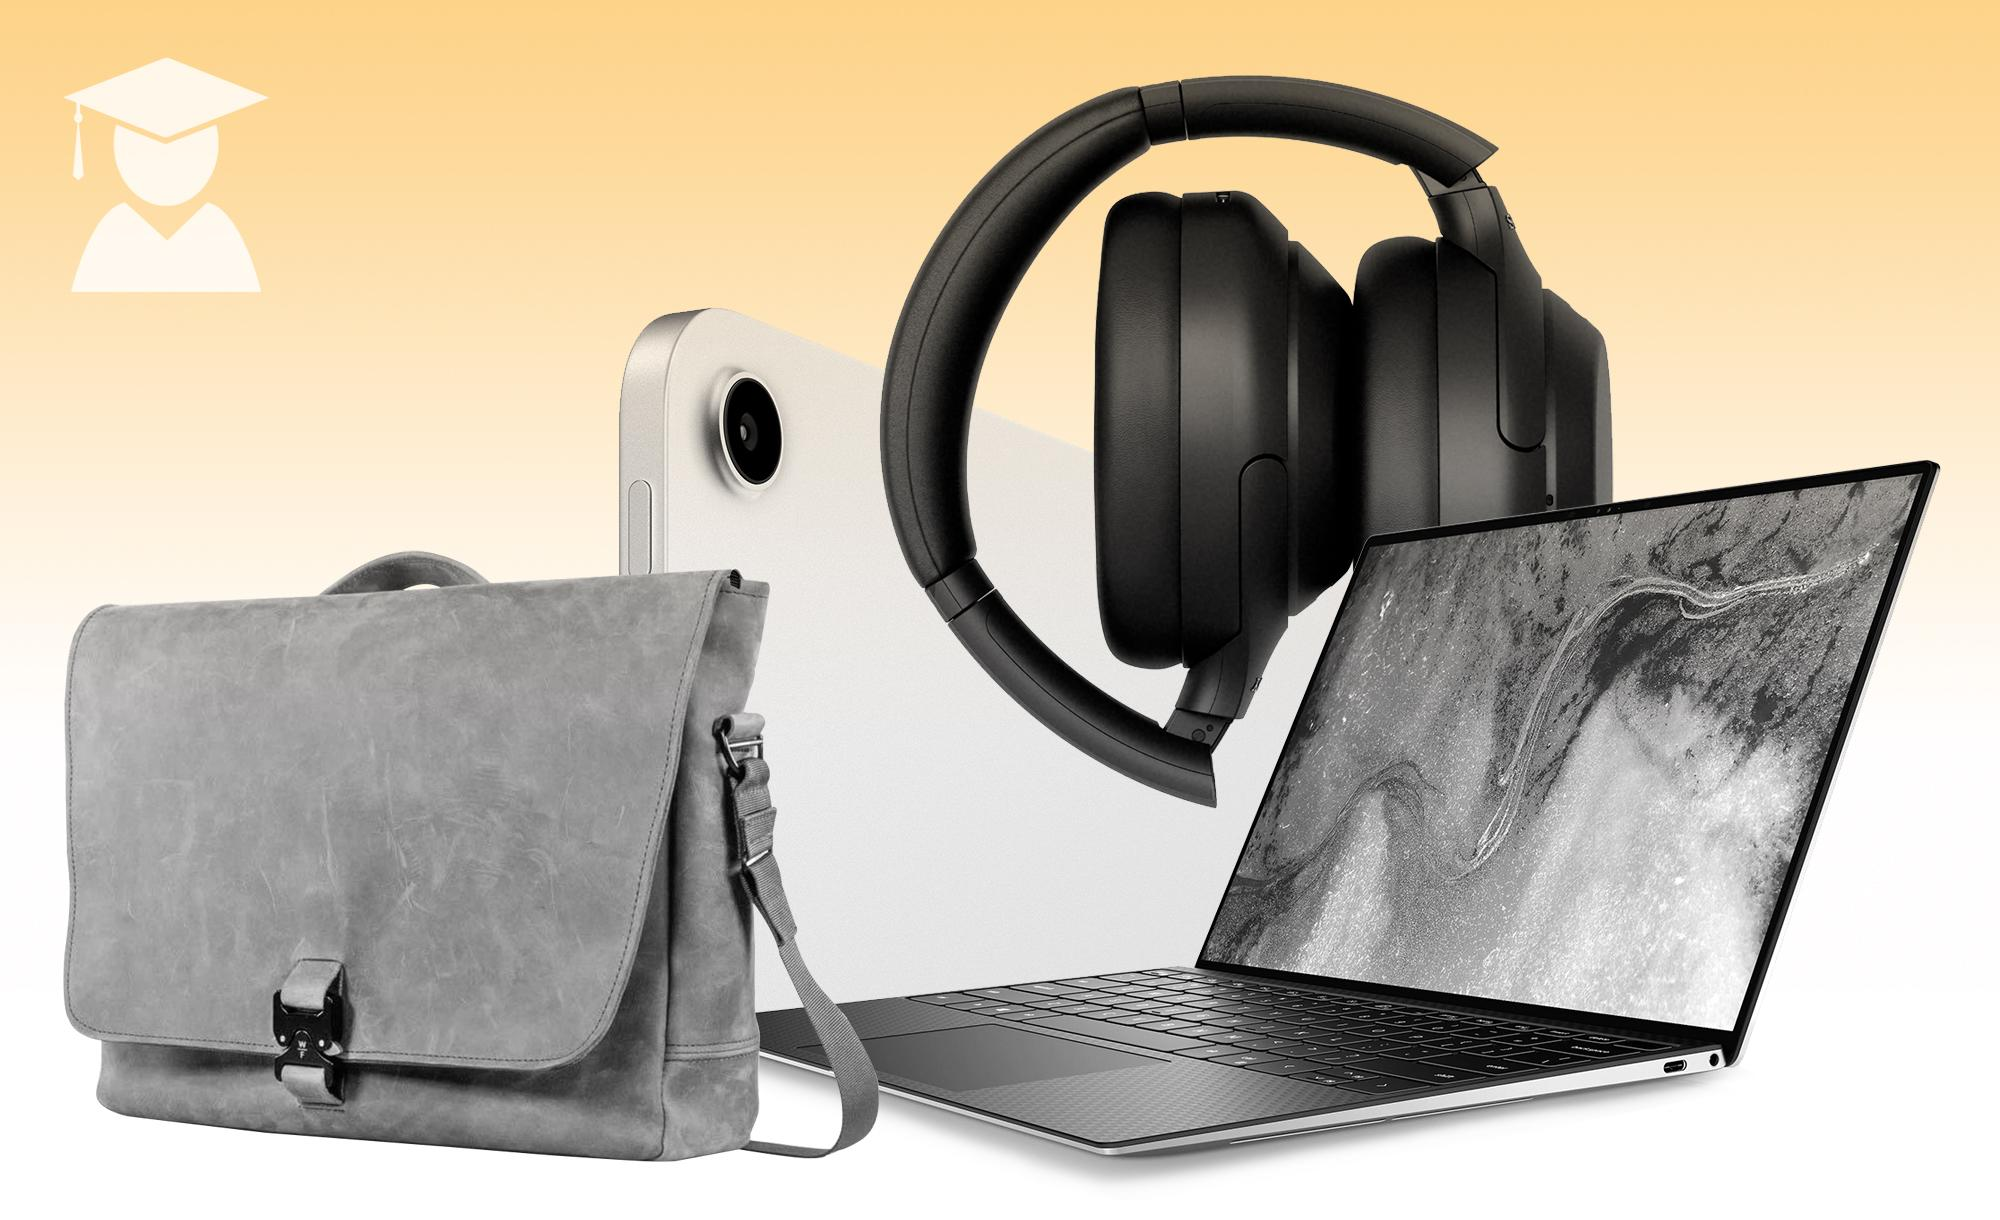 A collage of products in Engadget's graduation gift guide upgrade gifts section.